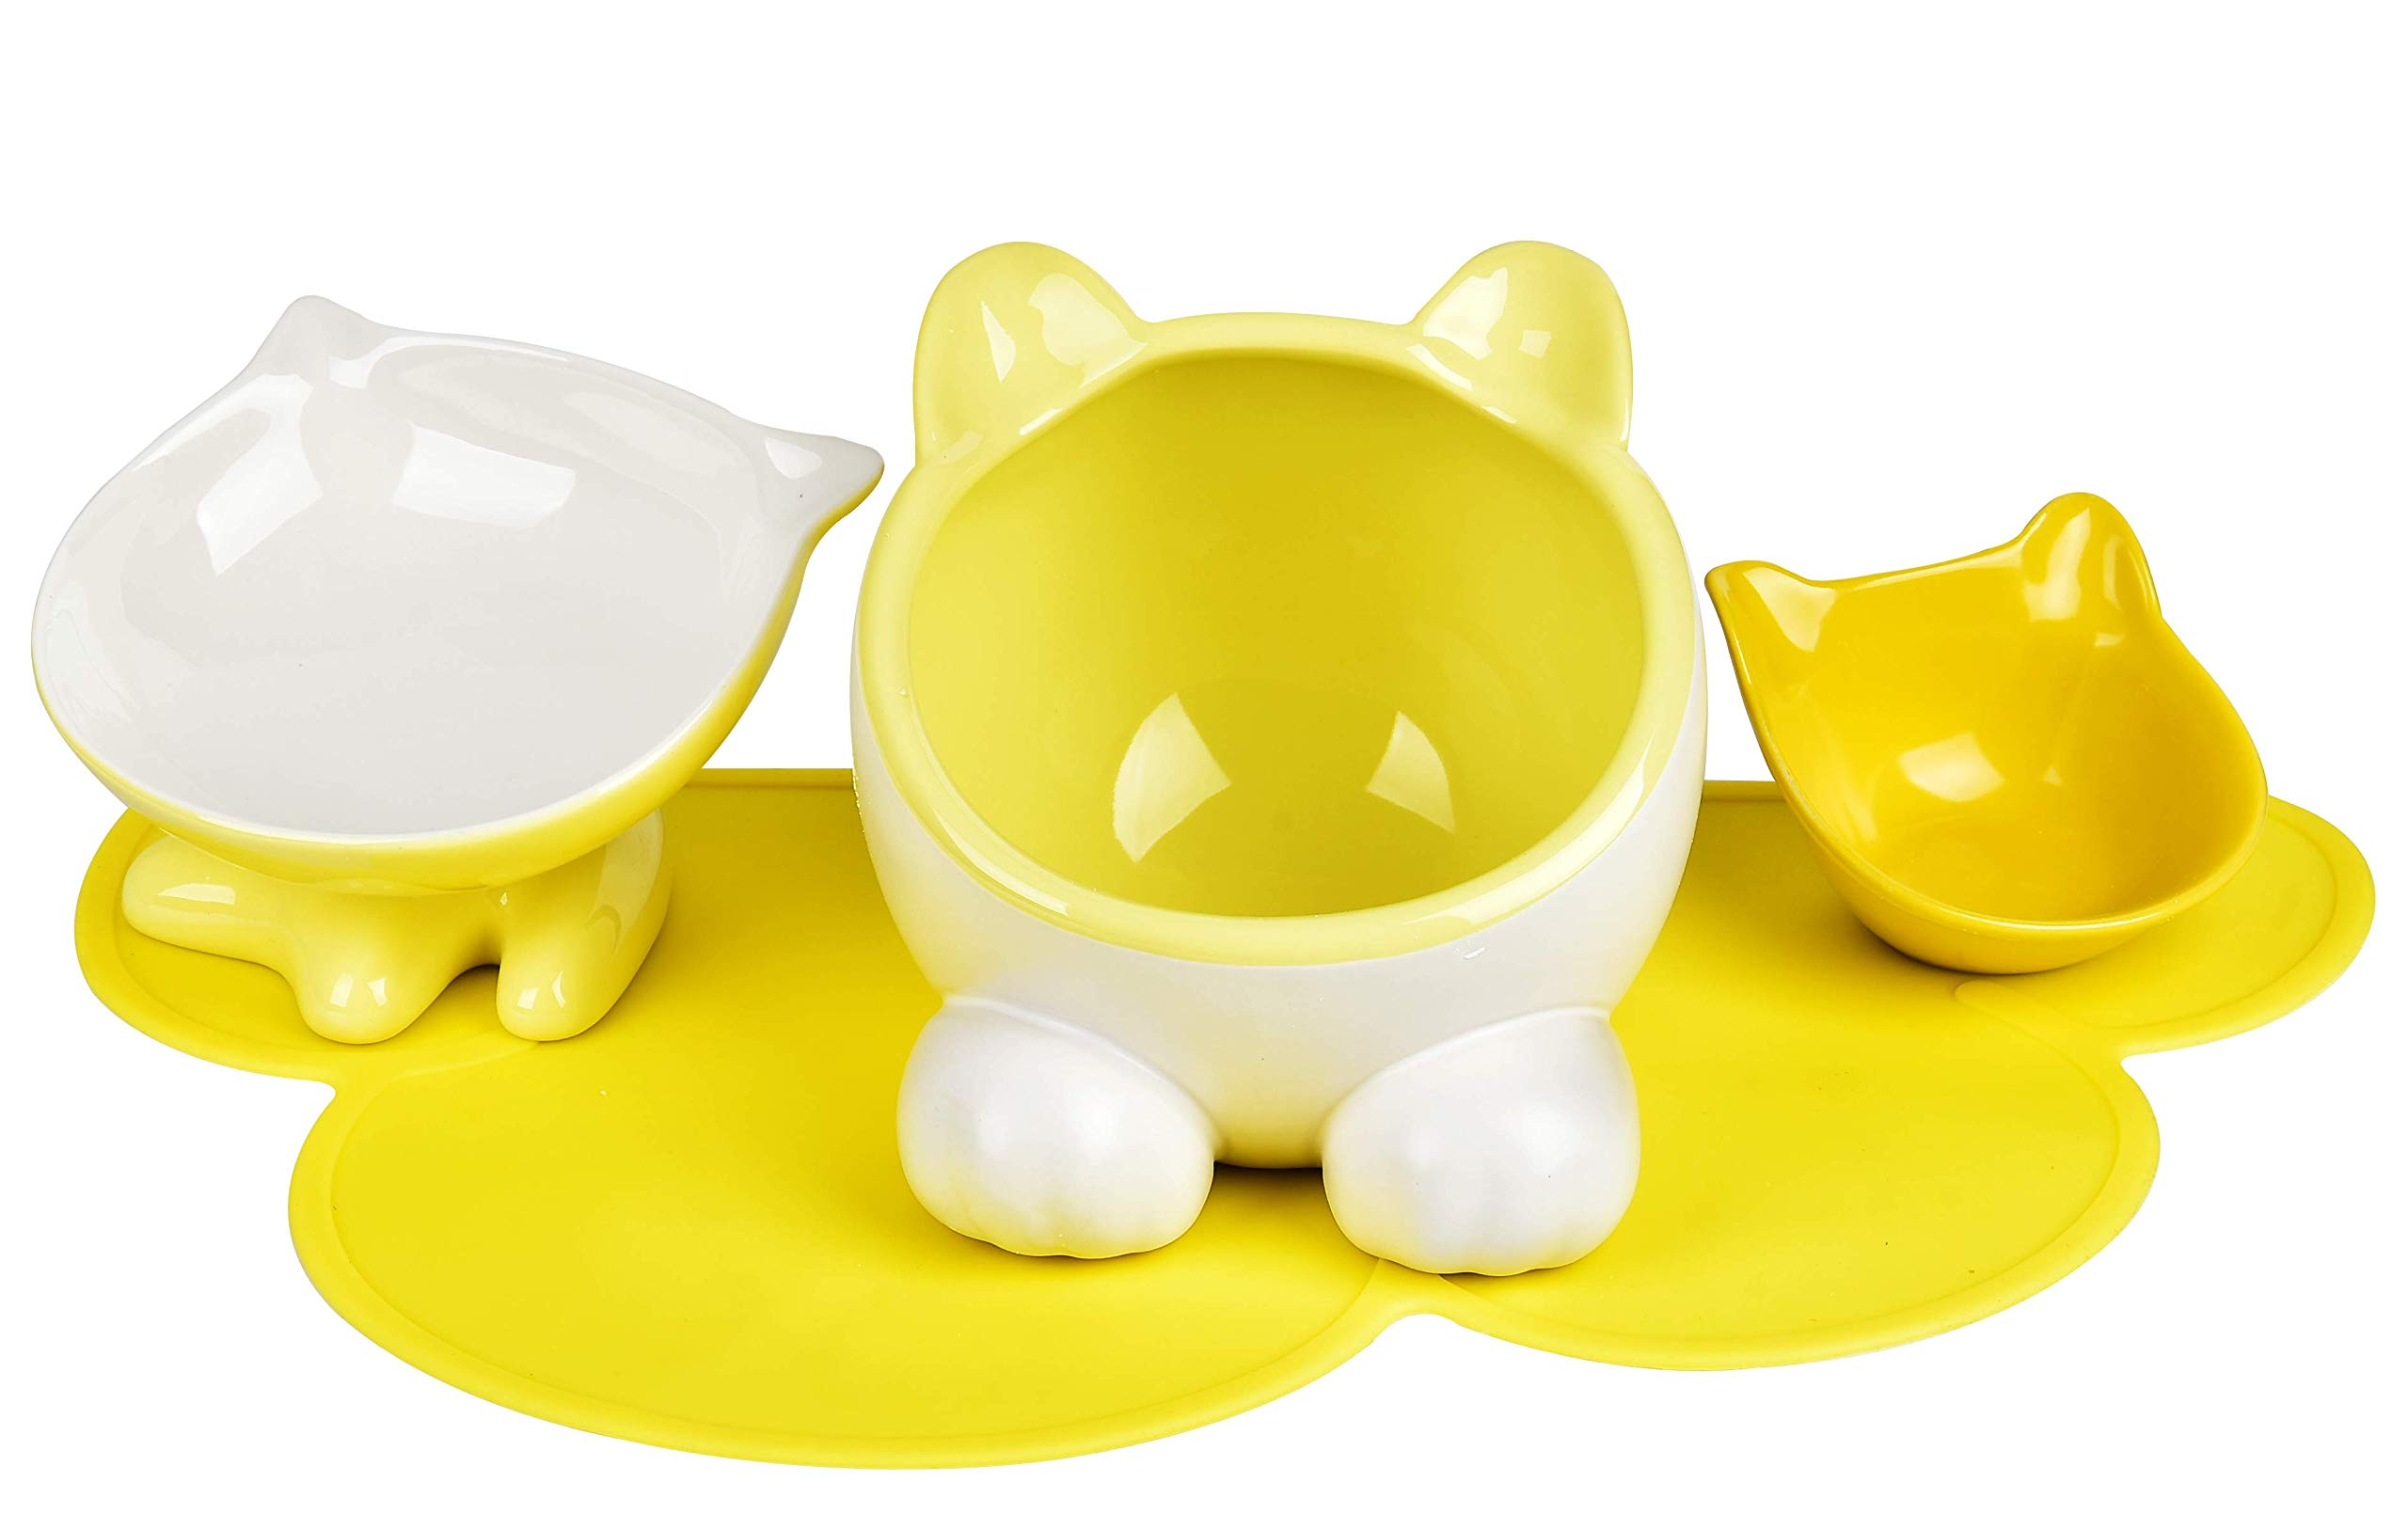 ViviPet Q Bowl and Big Head Water Bowl and Mini Bowl for Cat and Dog with Silicone Food Mat Set of Four (Lemon)